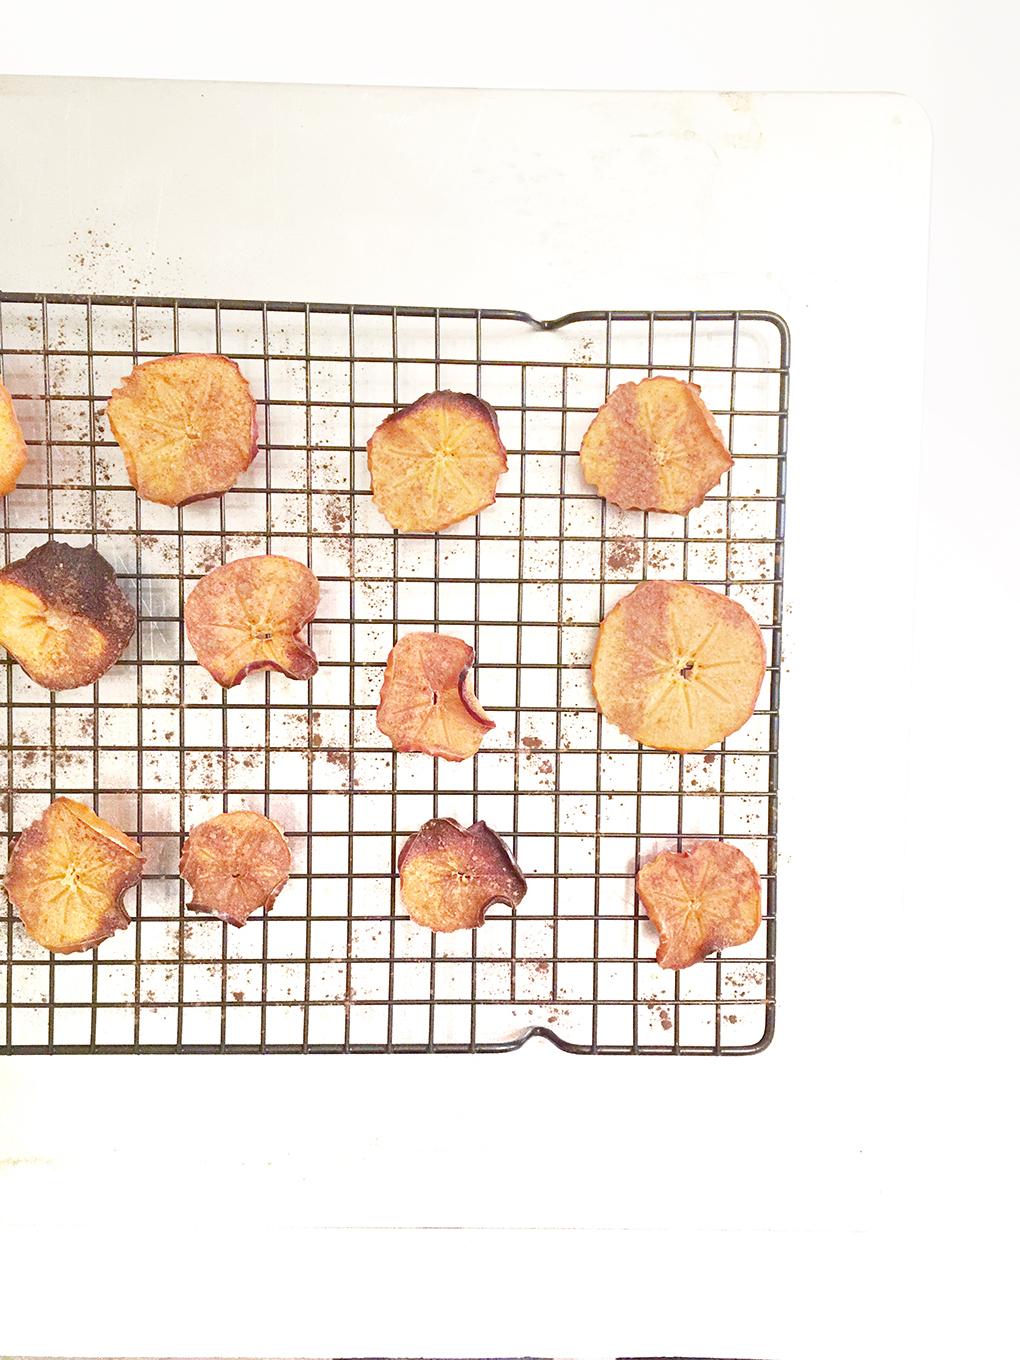 Persimmons and Coloring Books baking gluten free sarahkayhoffman.com